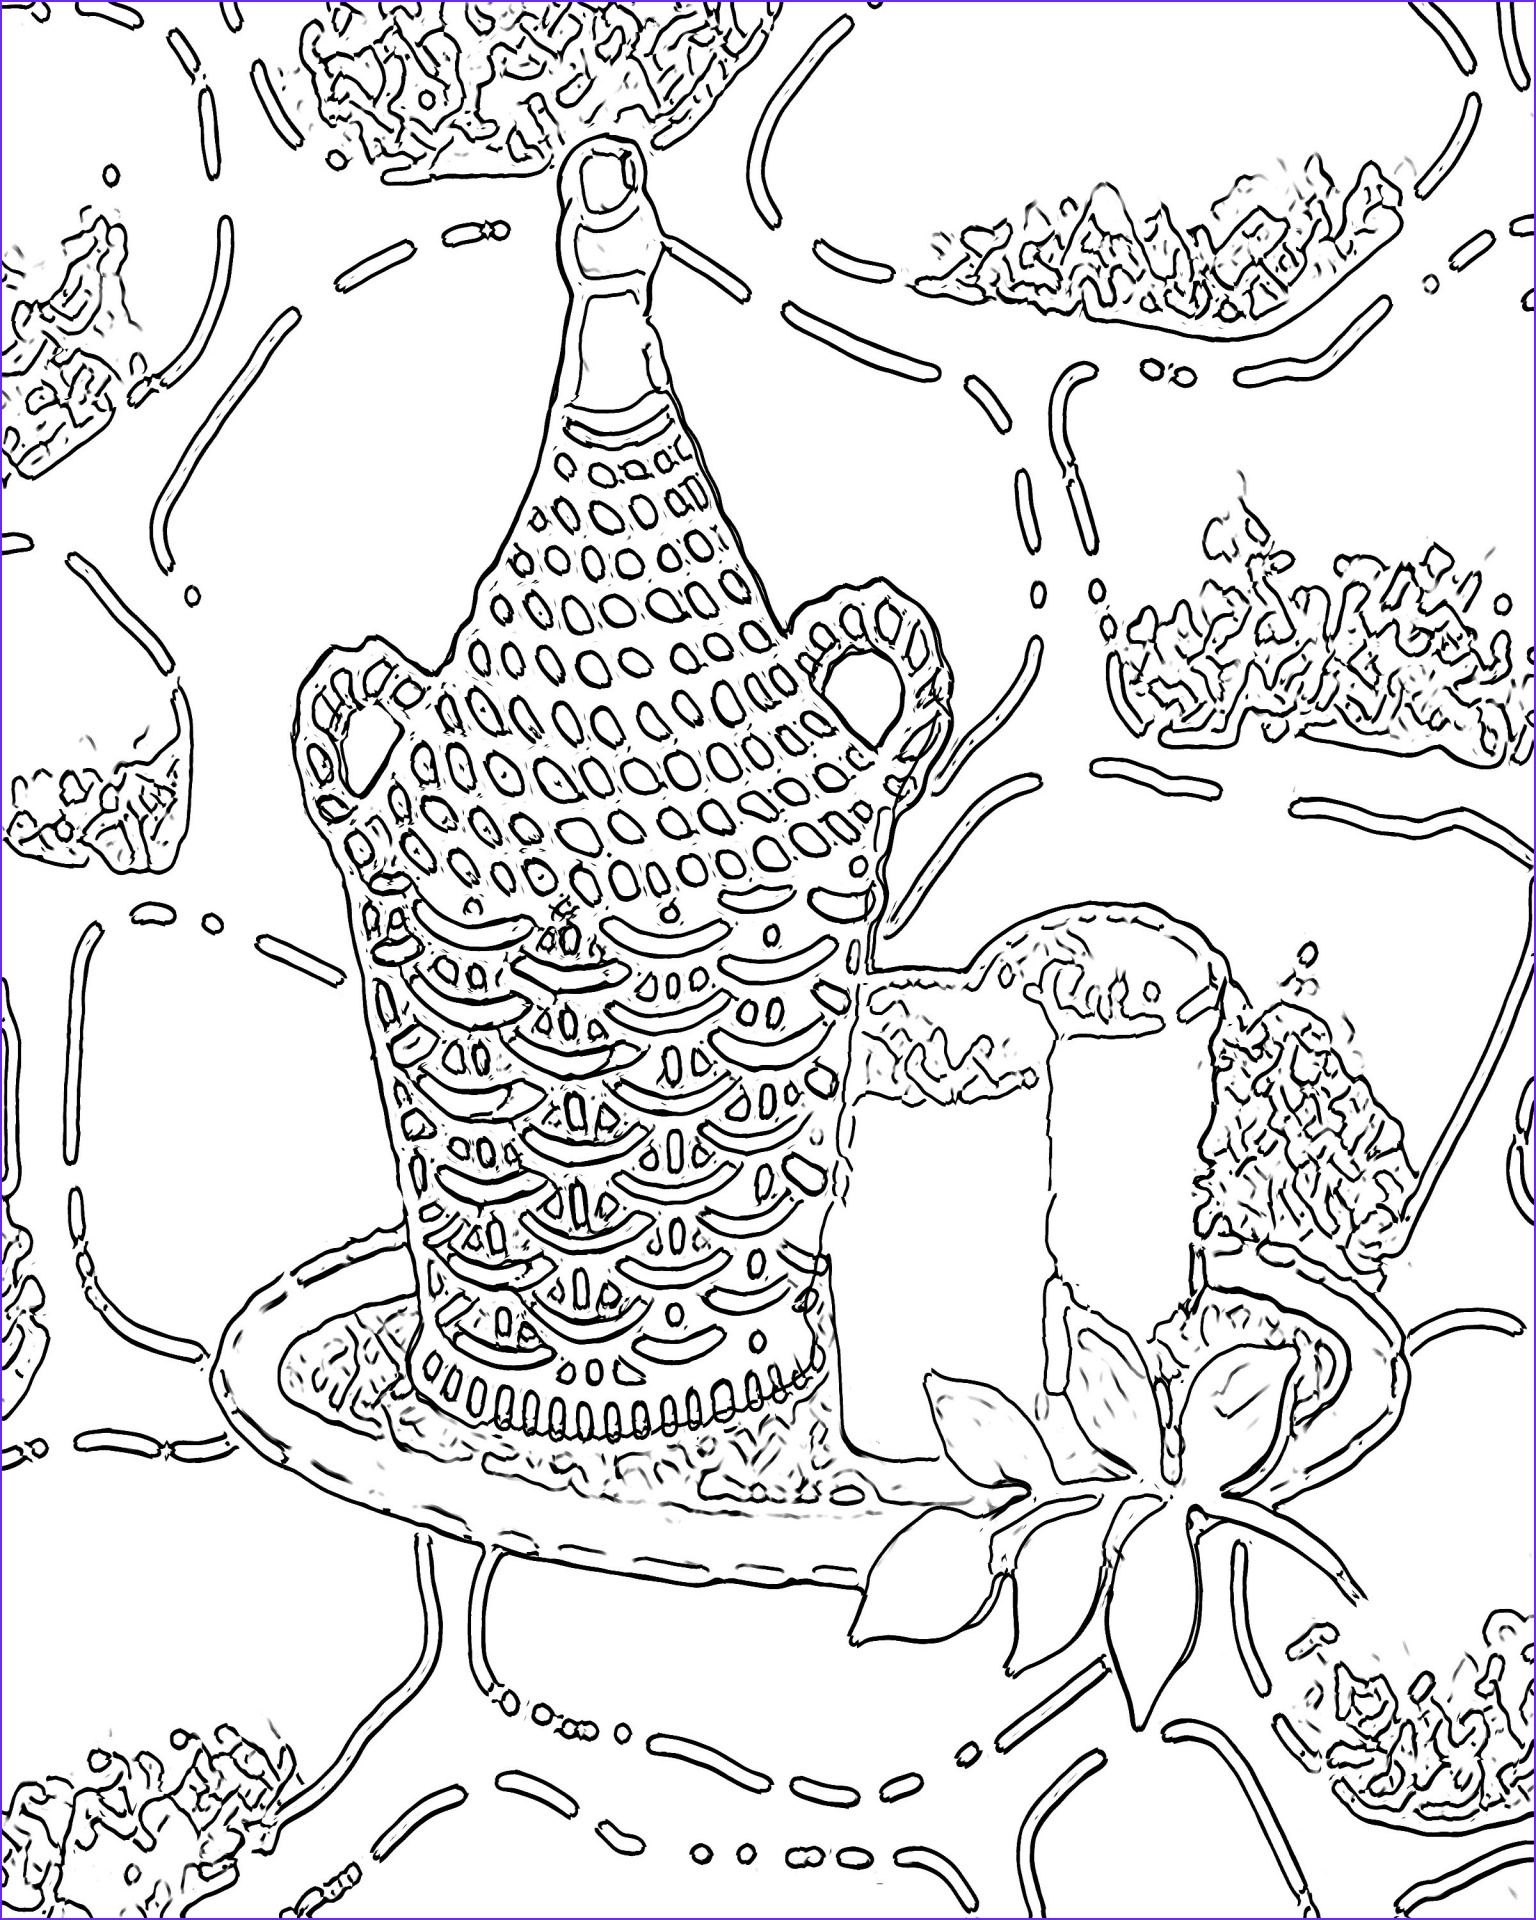 Printable Adult Coloring Book Beautiful Photography Free Printable Abstract Coloring Pages for Adults